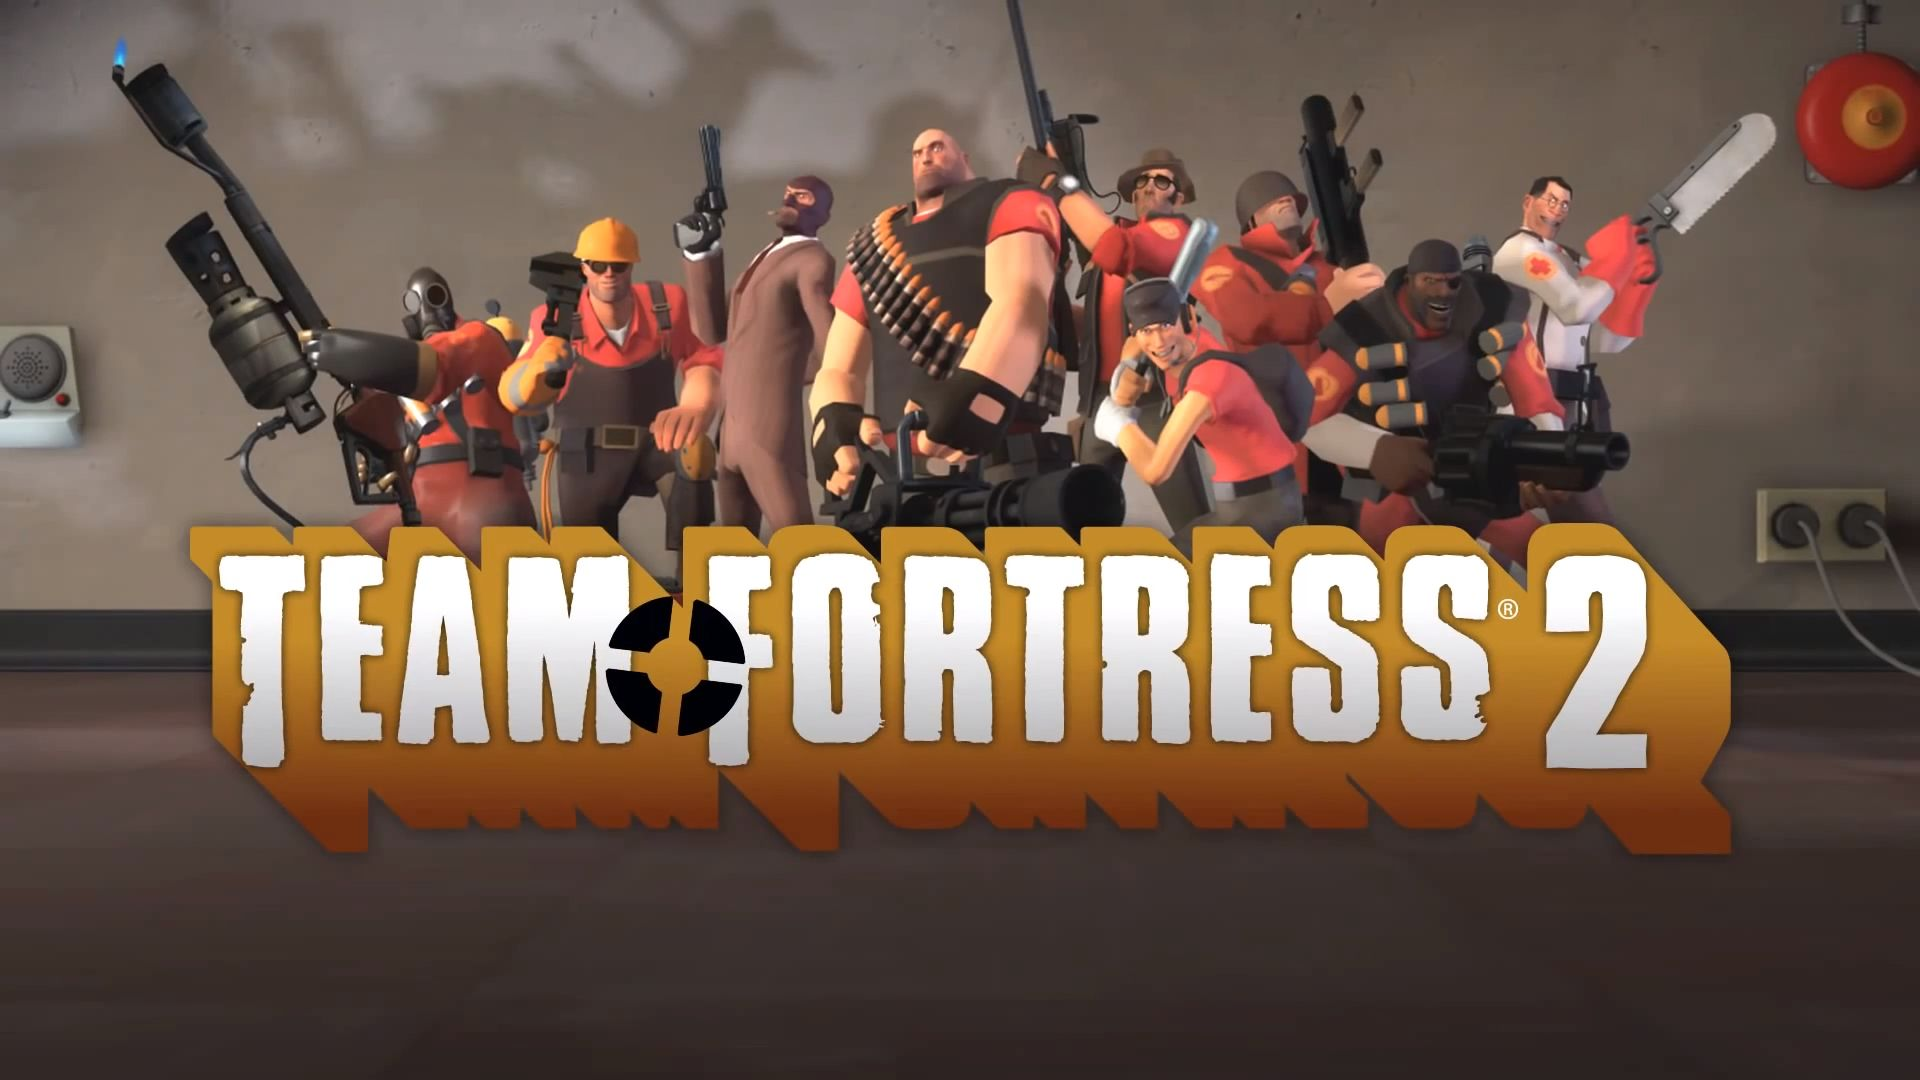 Team Fortress 2 dobiva veliki update